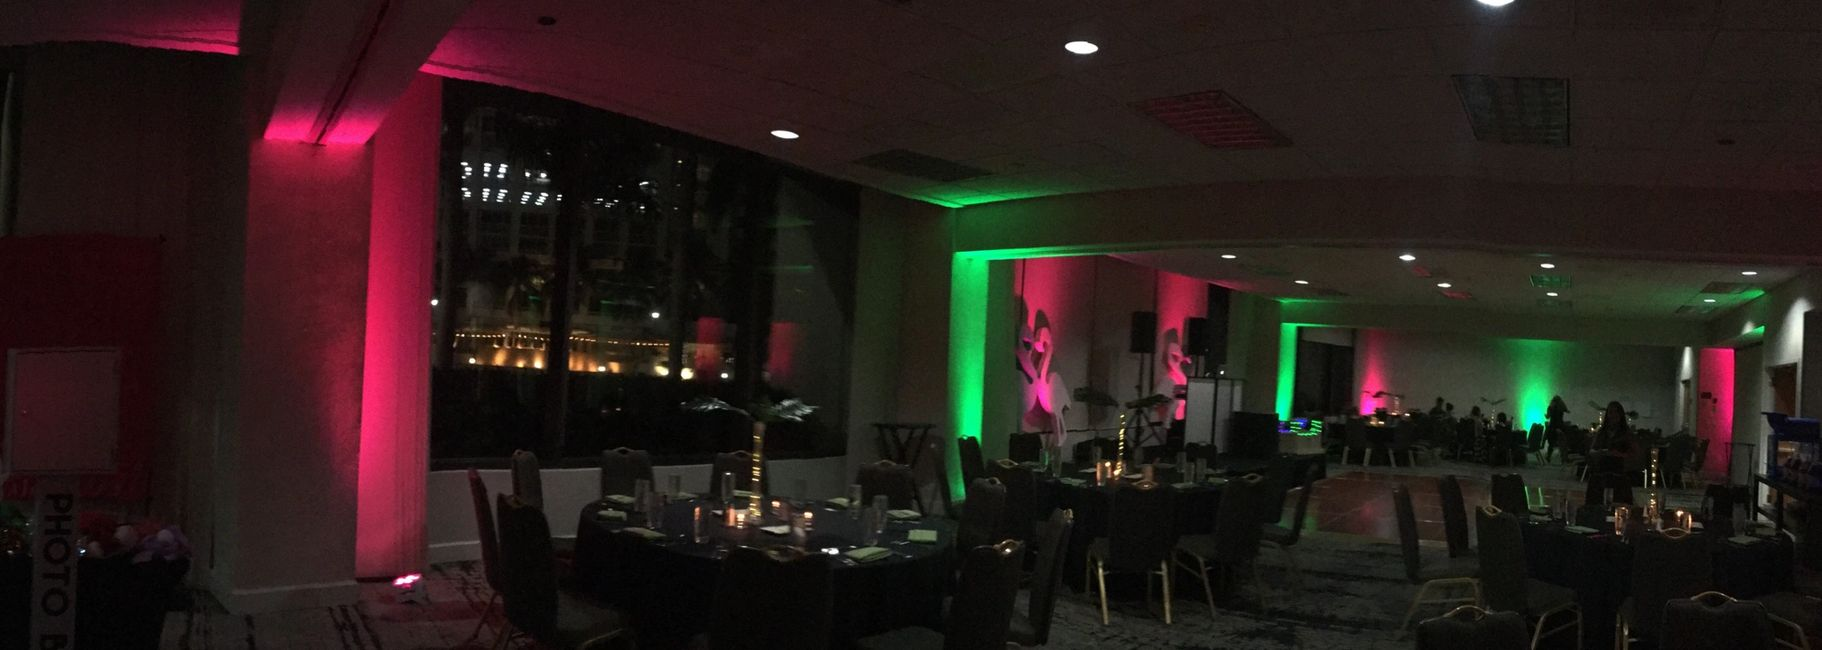 Uplighting Event services in Downtown Miami and Brickell